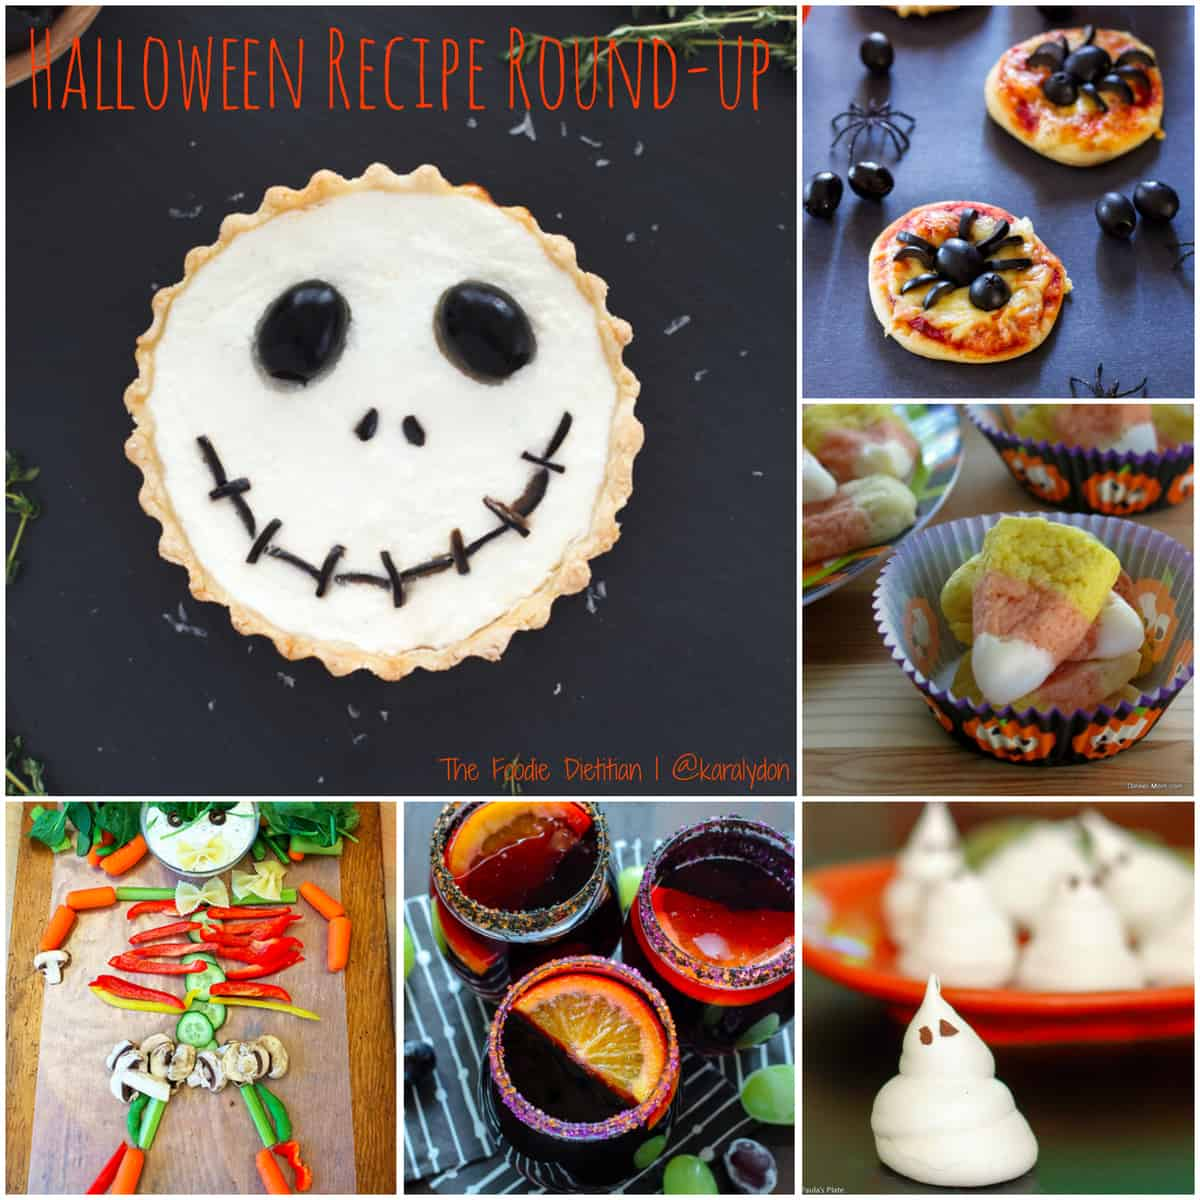 PicMonkey Collage - Halloween Recipe Round Up